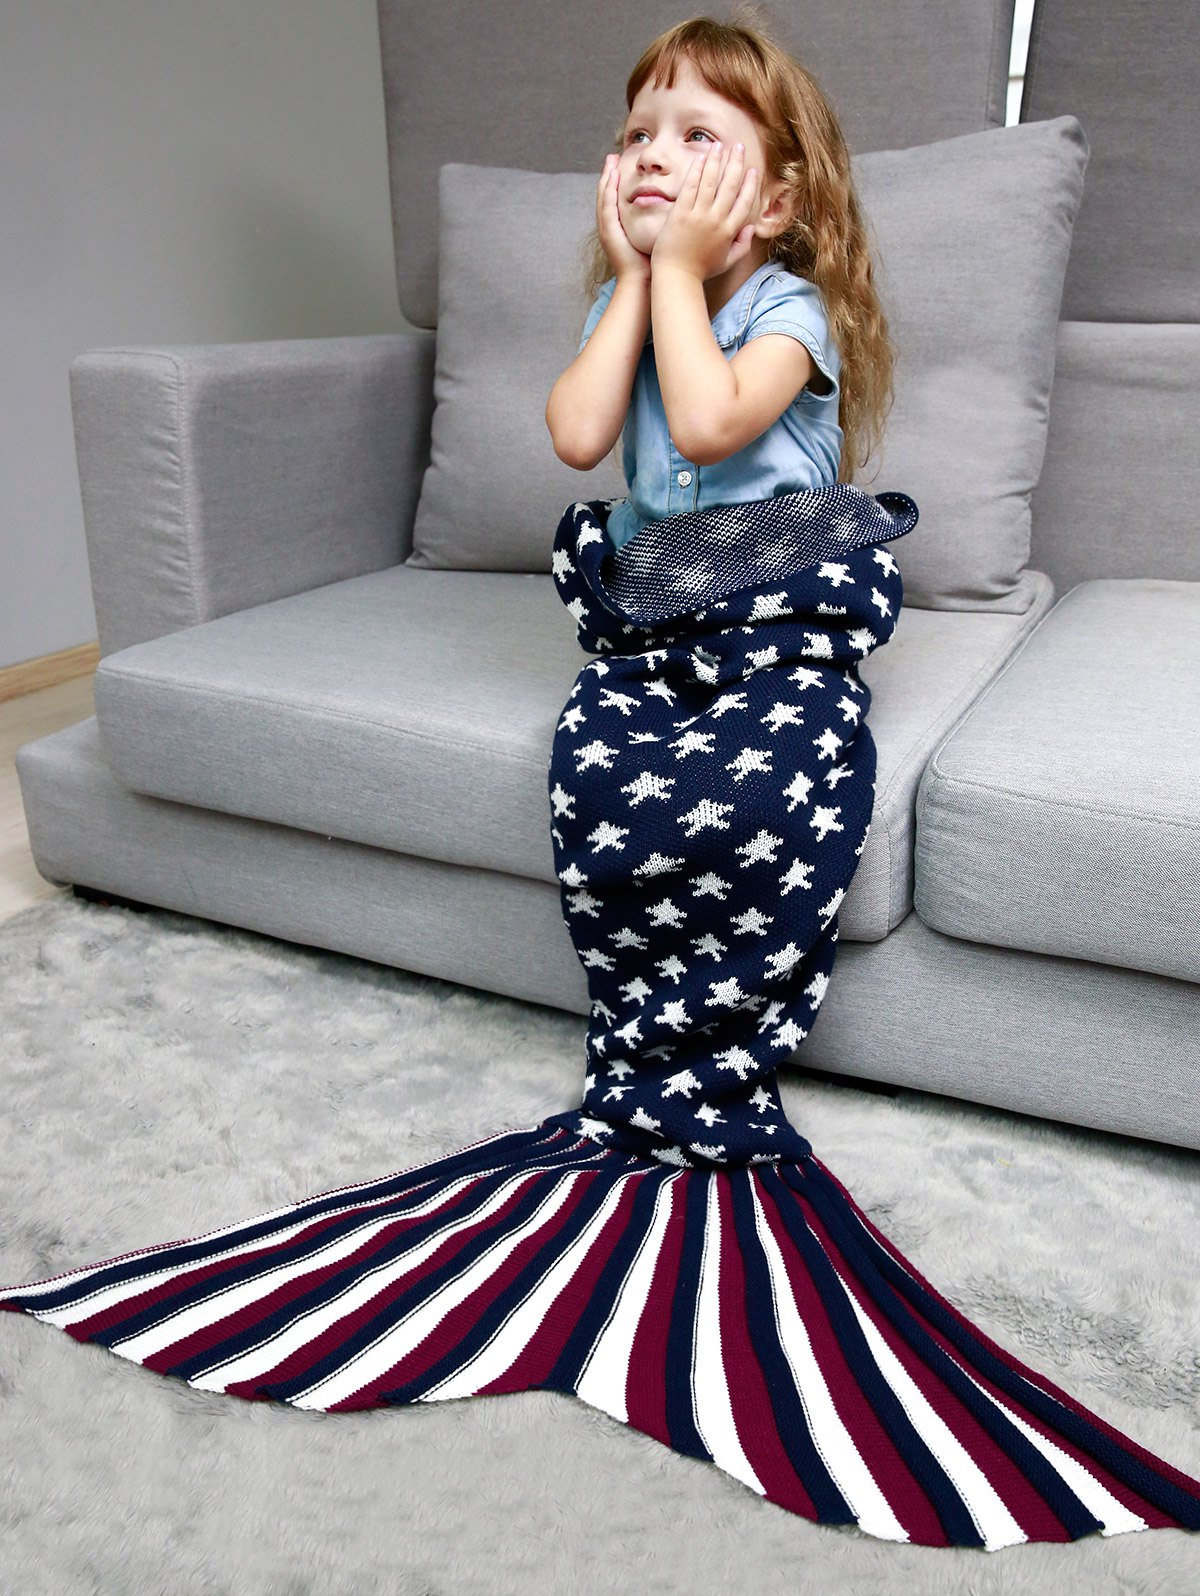 Stars and Stripes tricotée Mermaid Blanket Throw For Kids - Bleu Violet